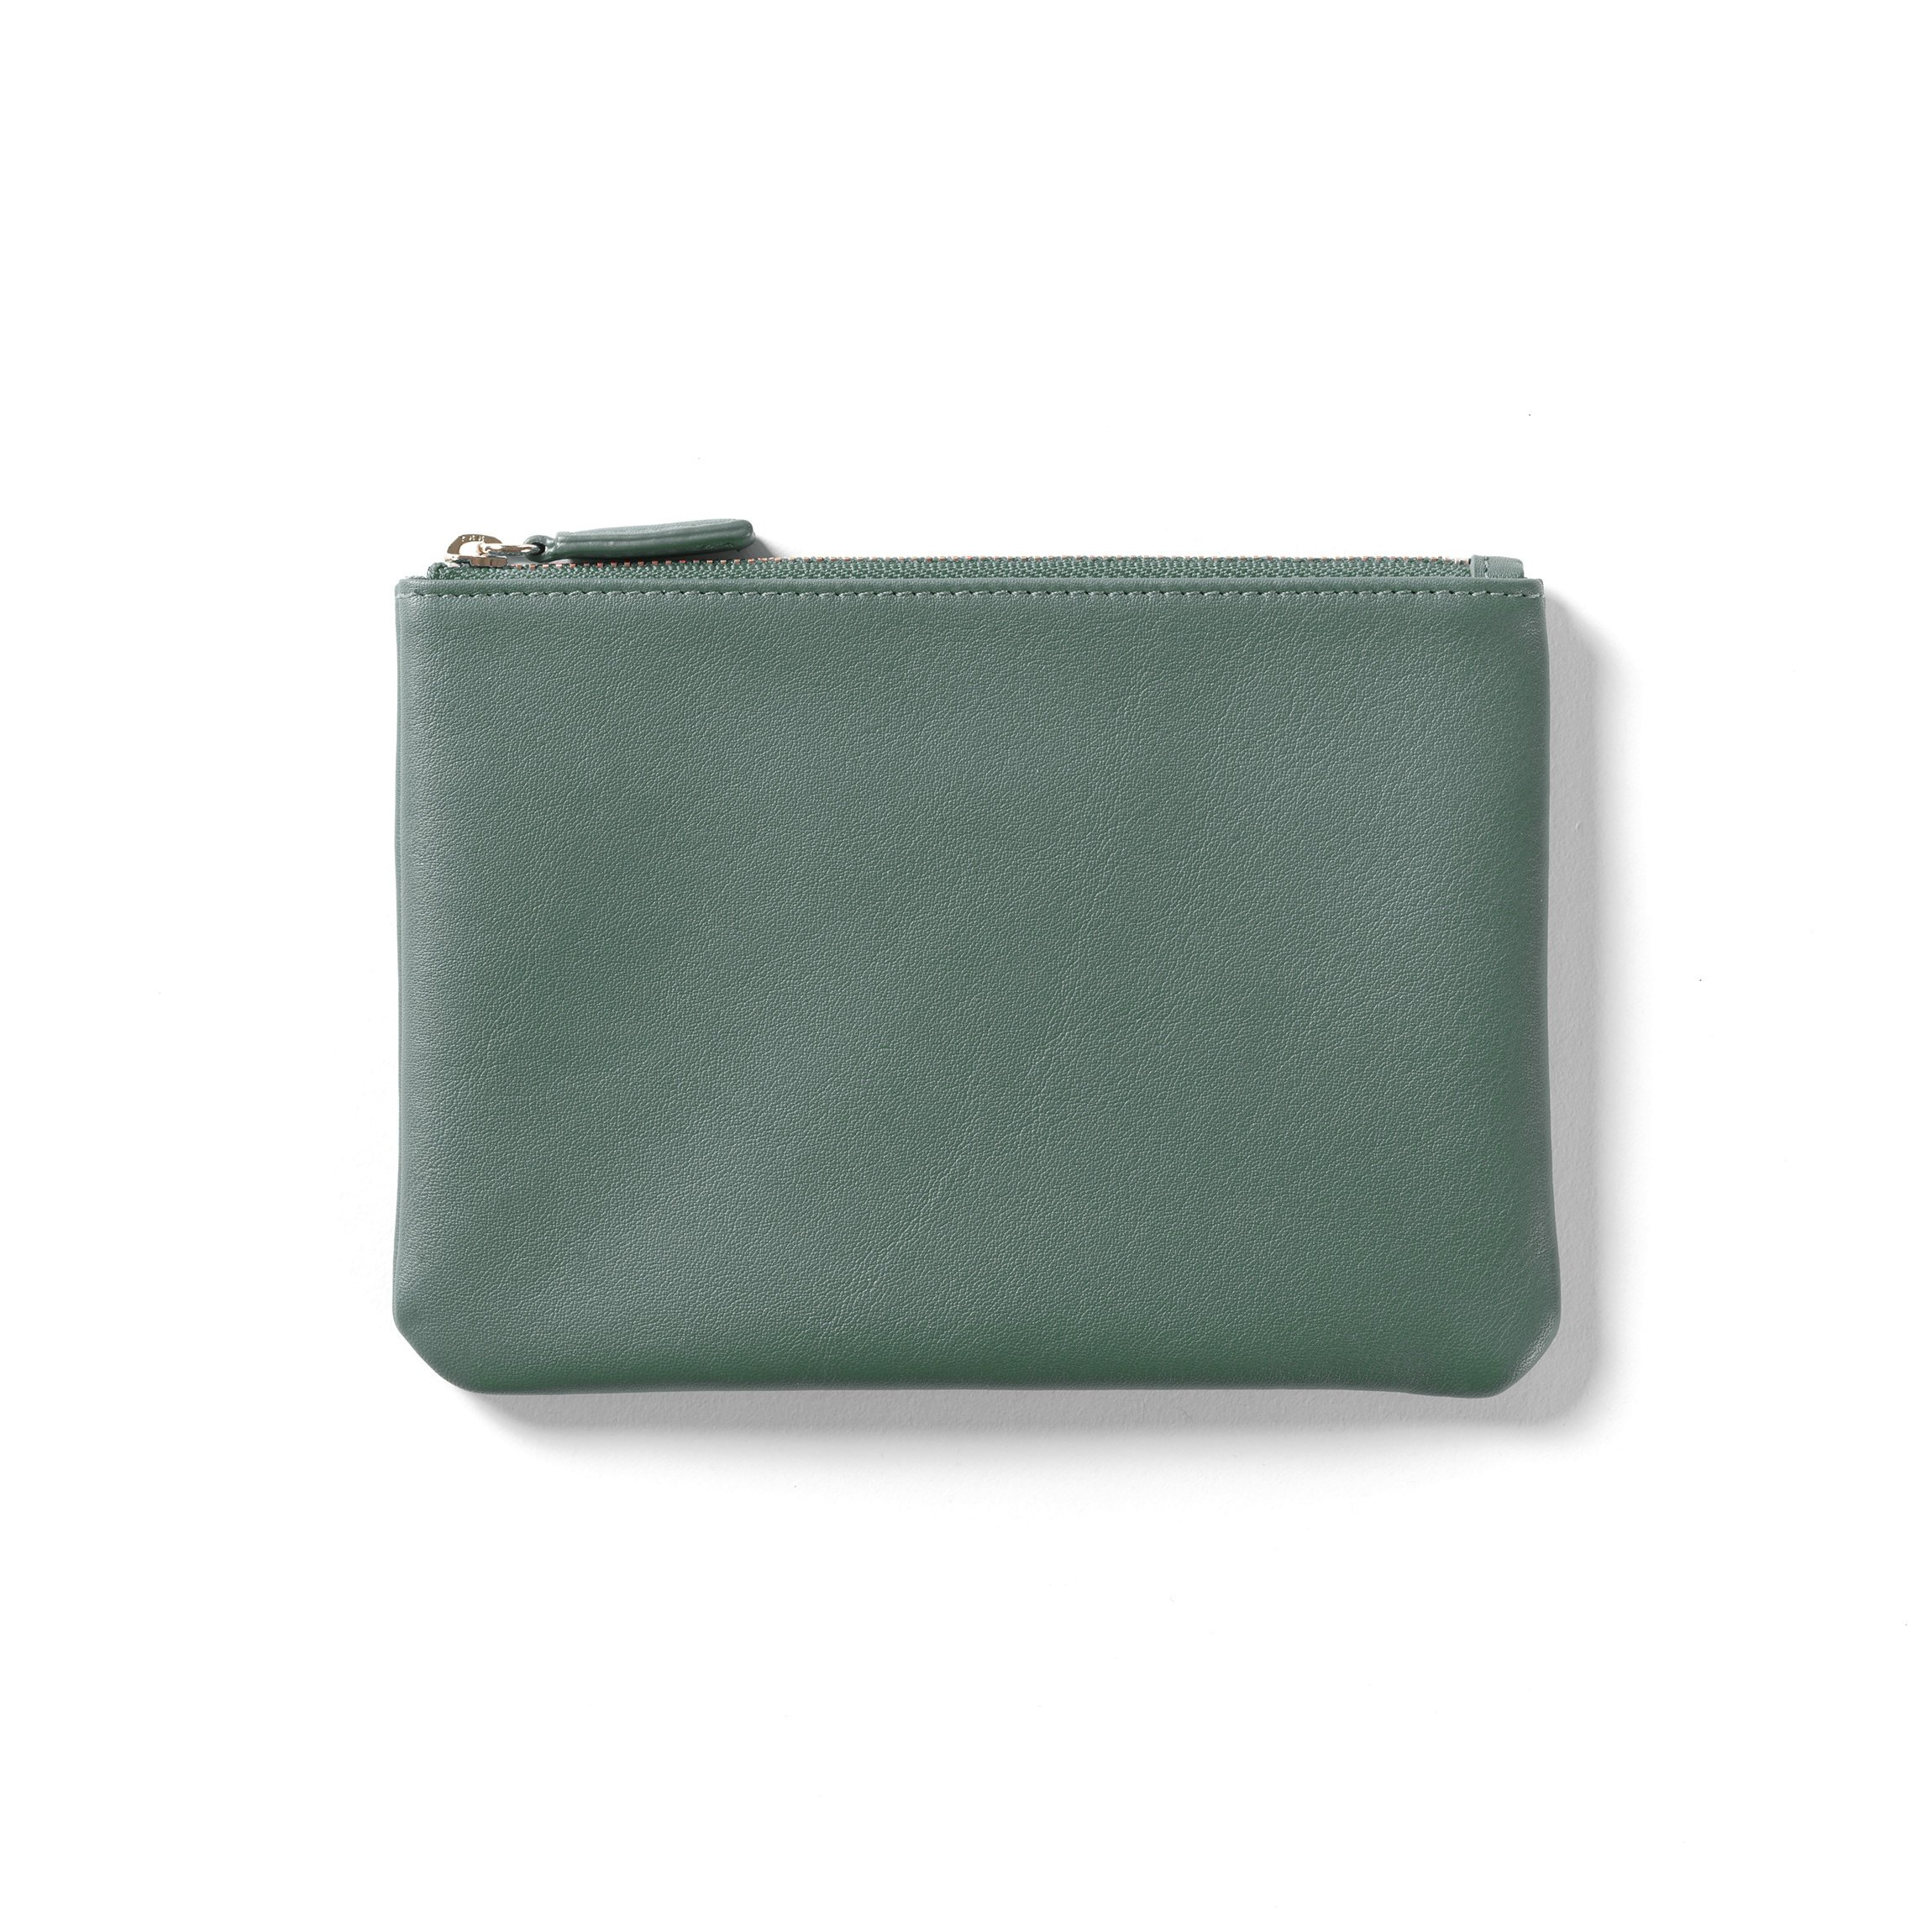 Small Pouch - Full Grain Leather Leather - Dusk (blue)